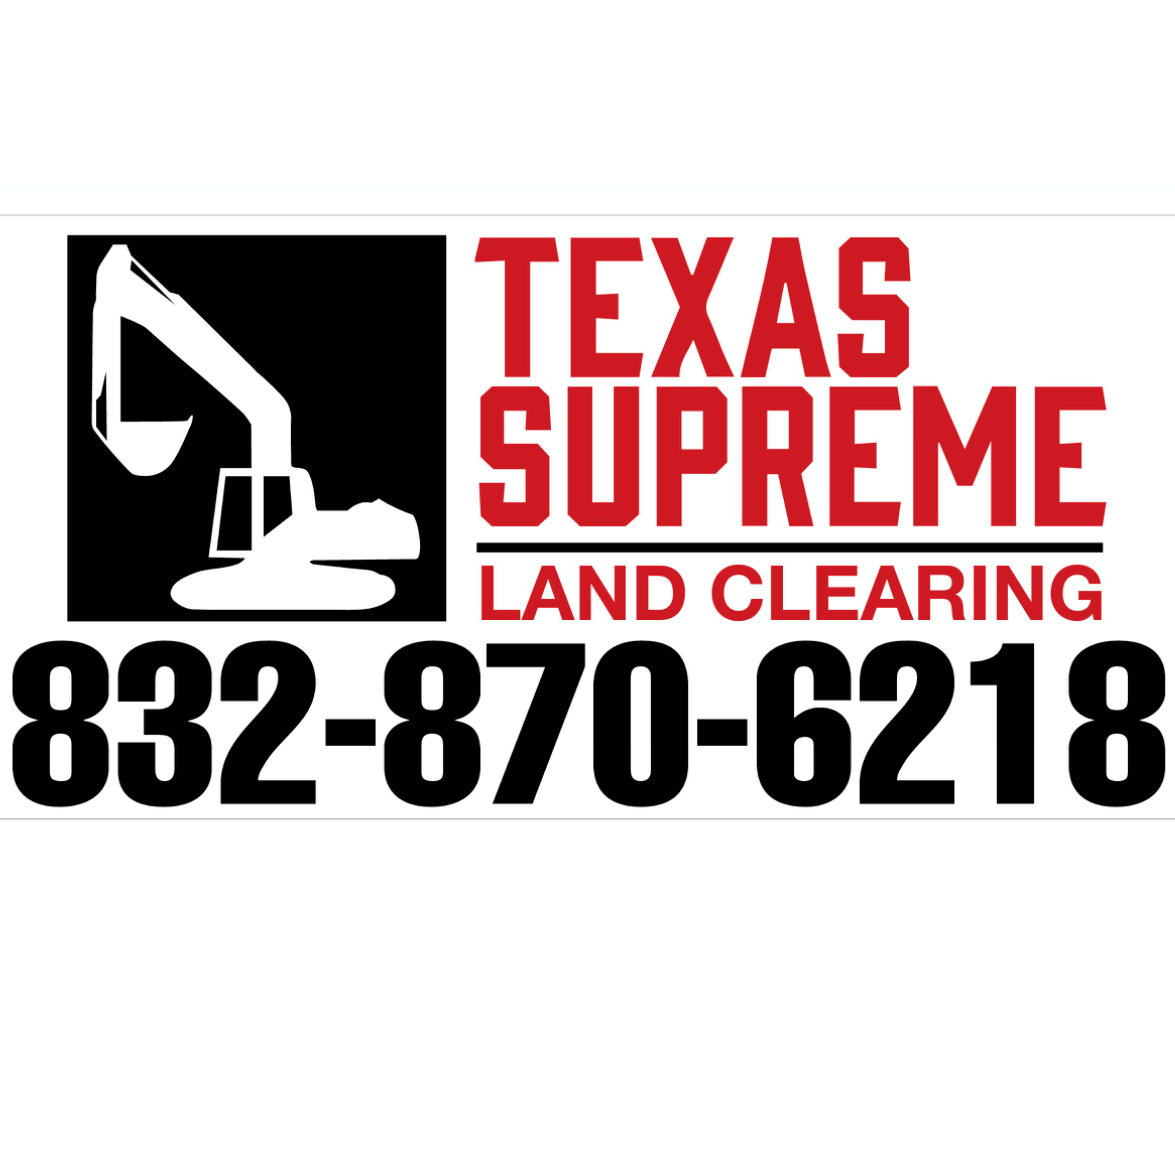 Texas Supreme Land Clearing